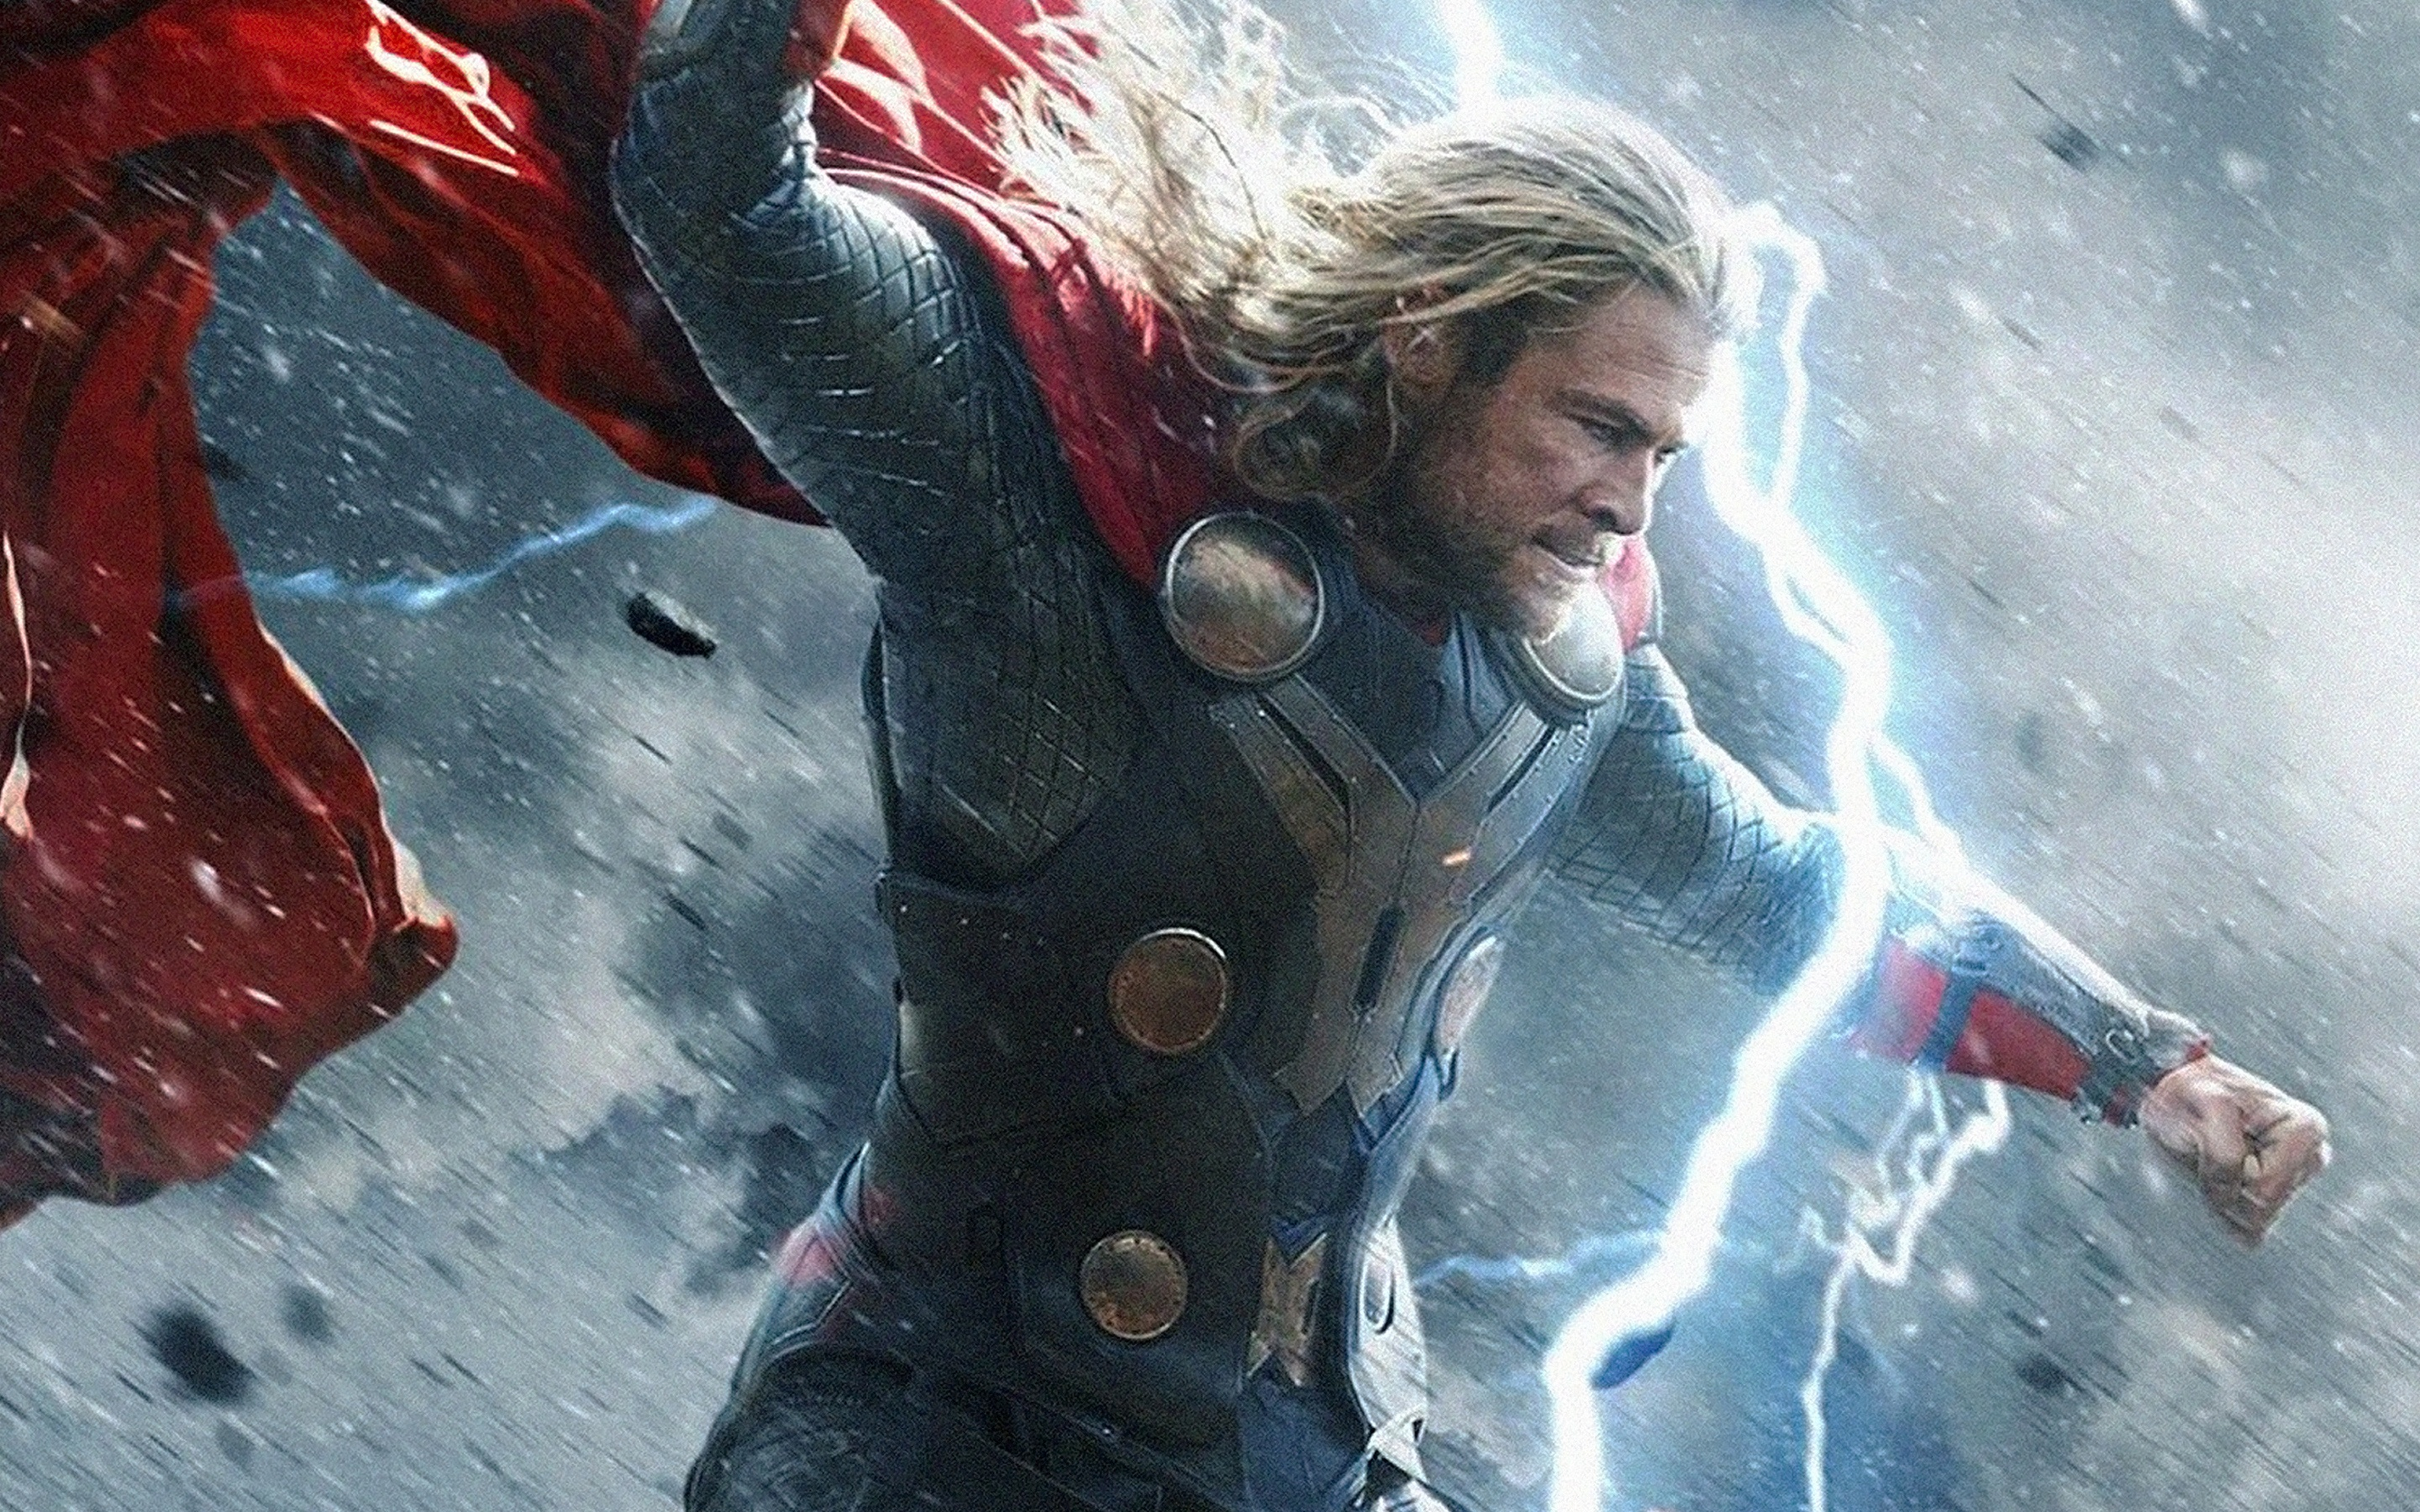 Hd wallpaper thor - Thor 2 The Dark World Movie Wallpapers Hd Wallpapers